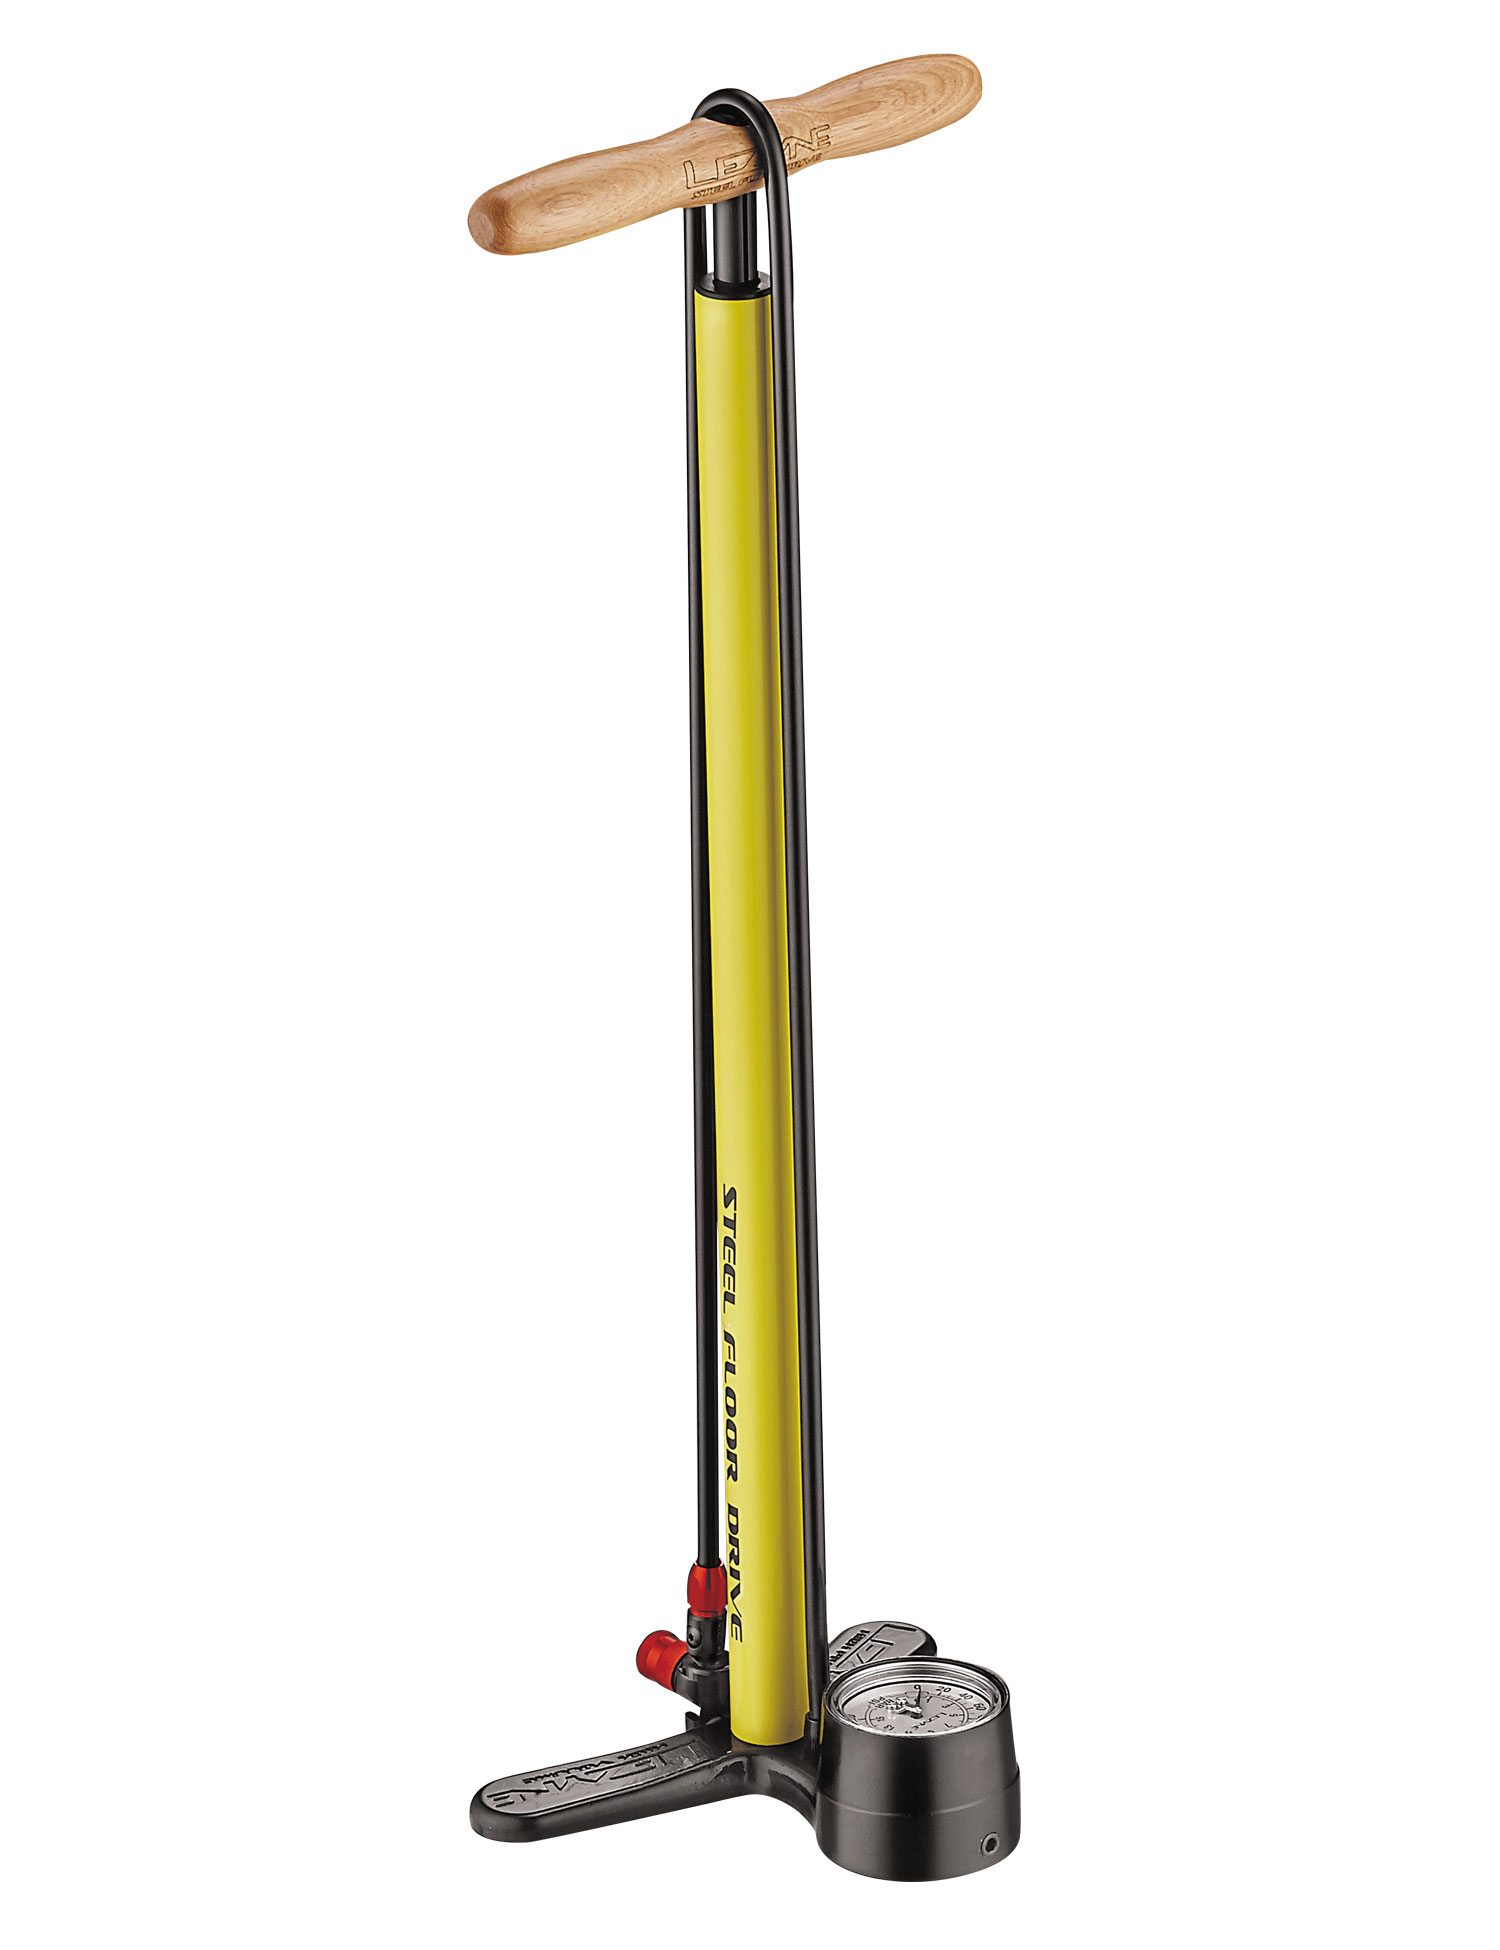 hustilka Lezyne Steel Floor Drive yellow